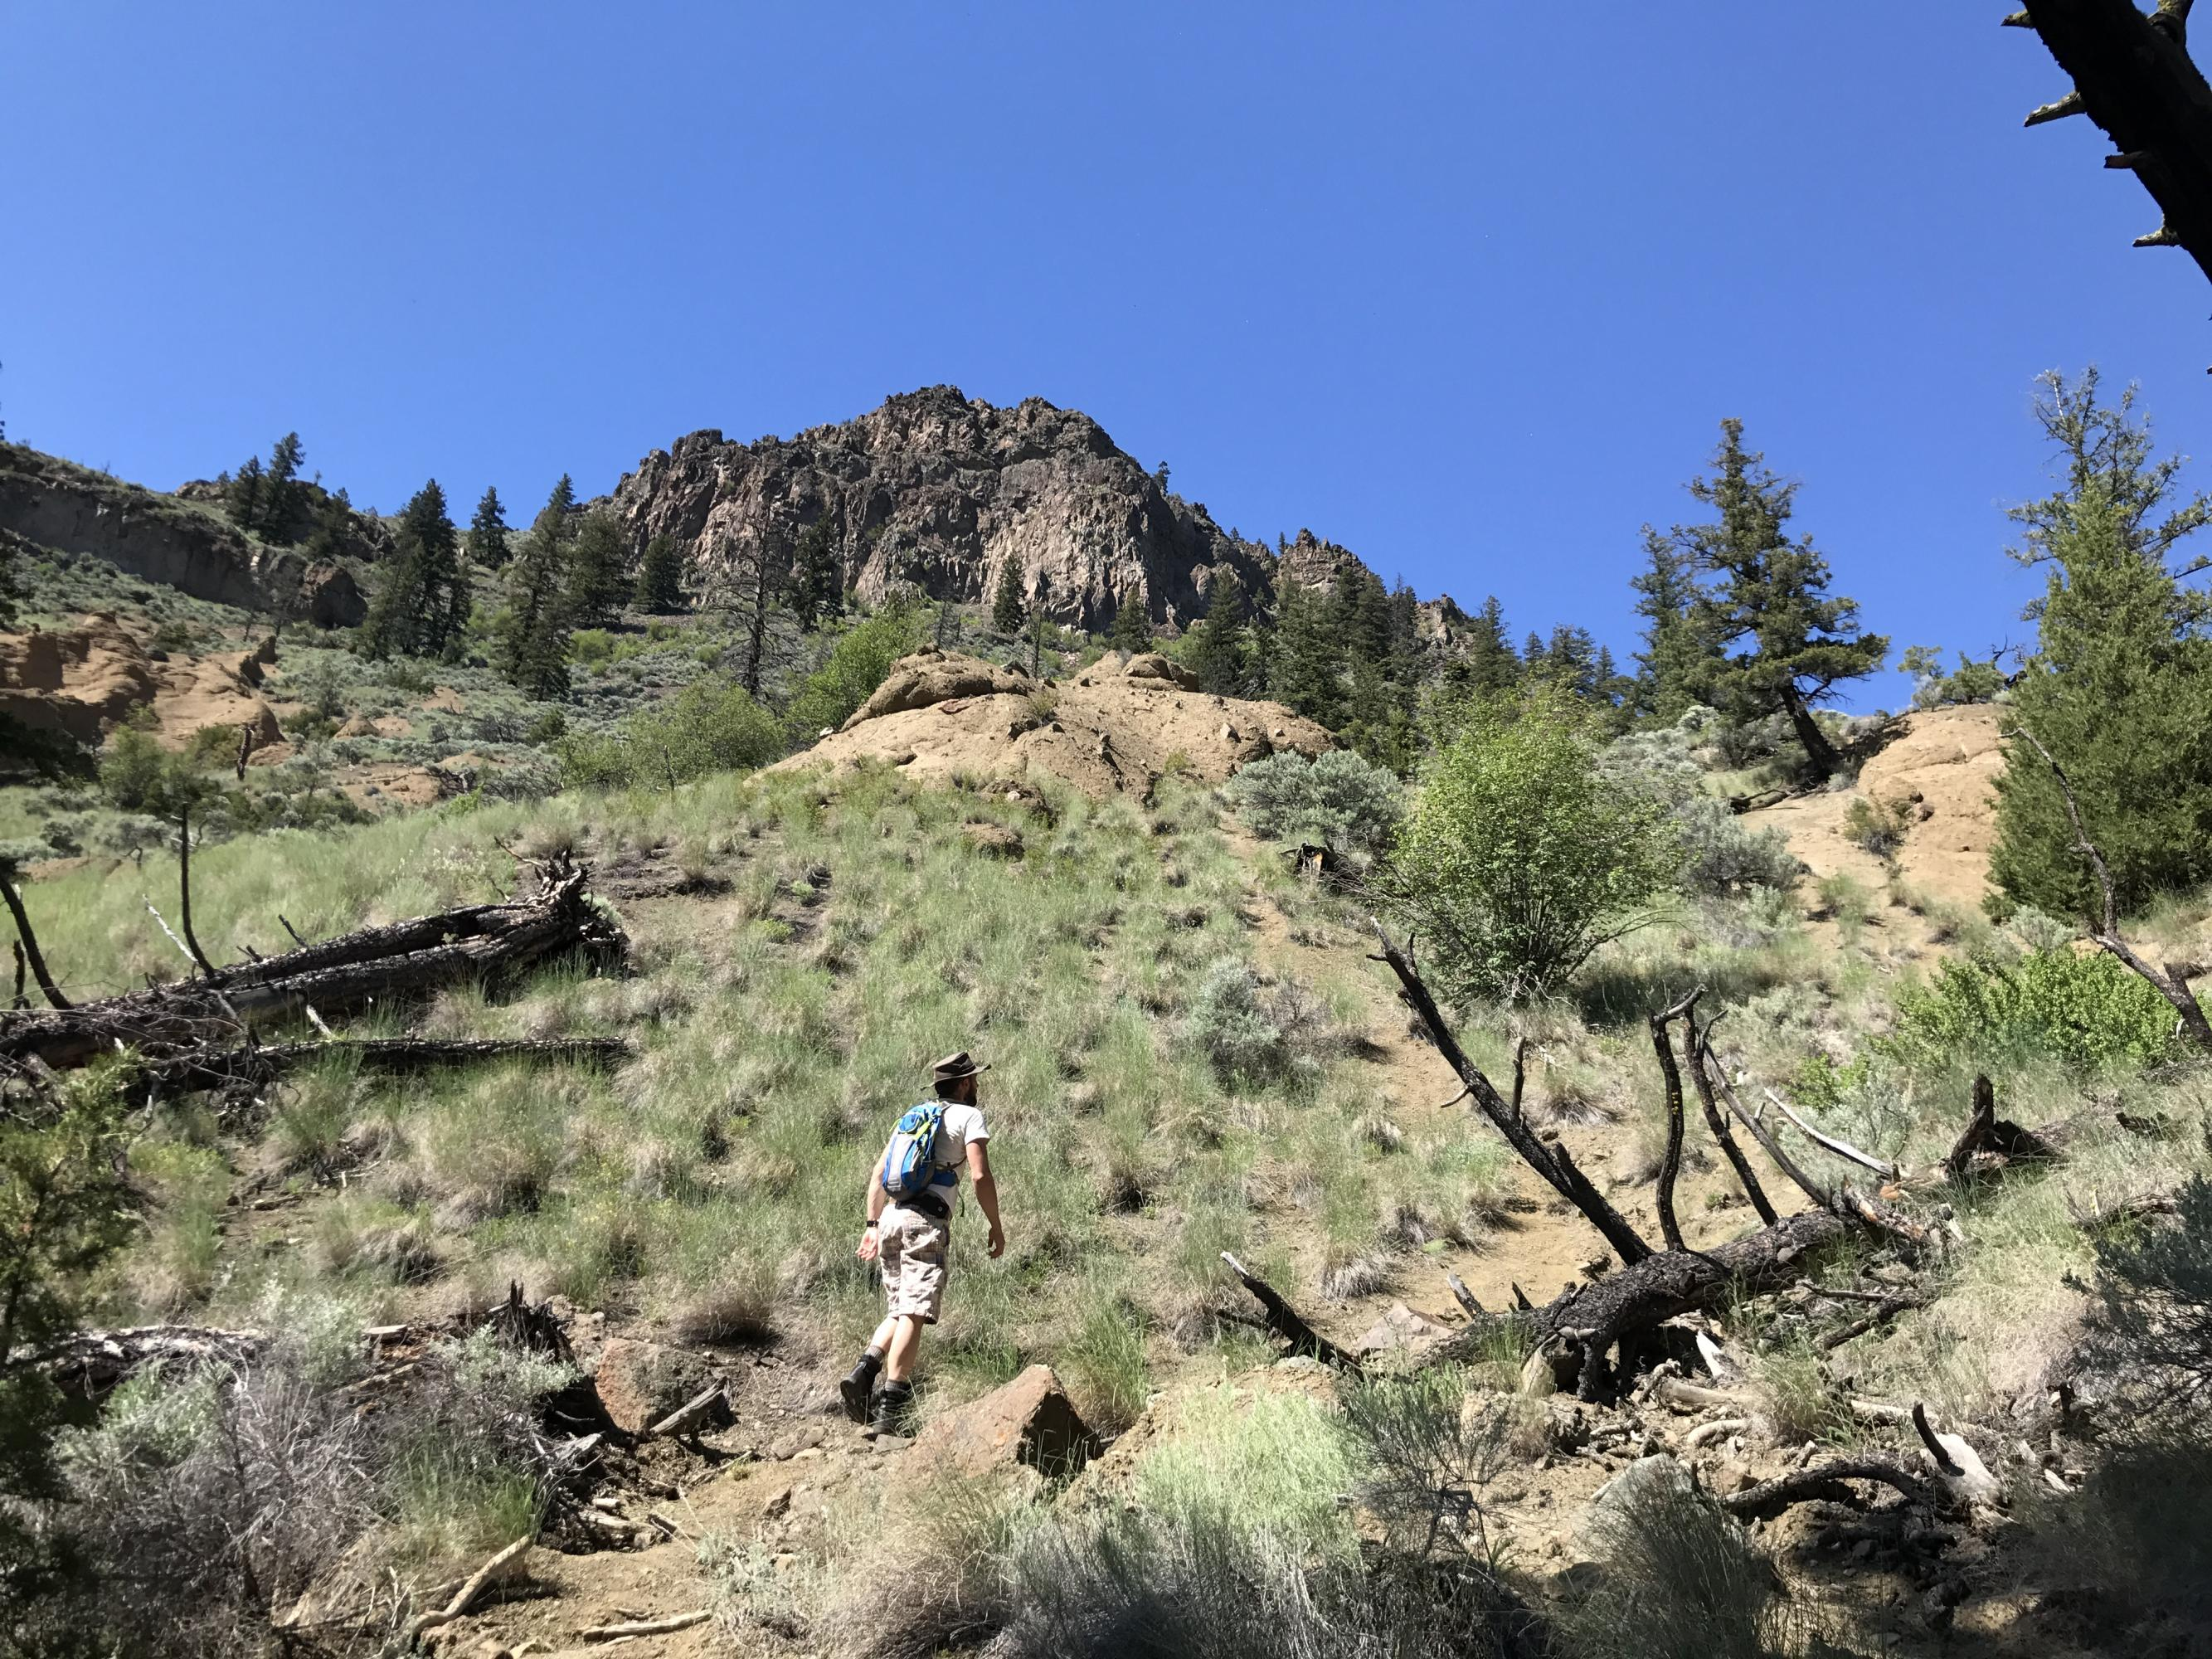 HikingAddiction ca - Trails: Cinnamon Ridge/Hoodoos Ridge Ascent